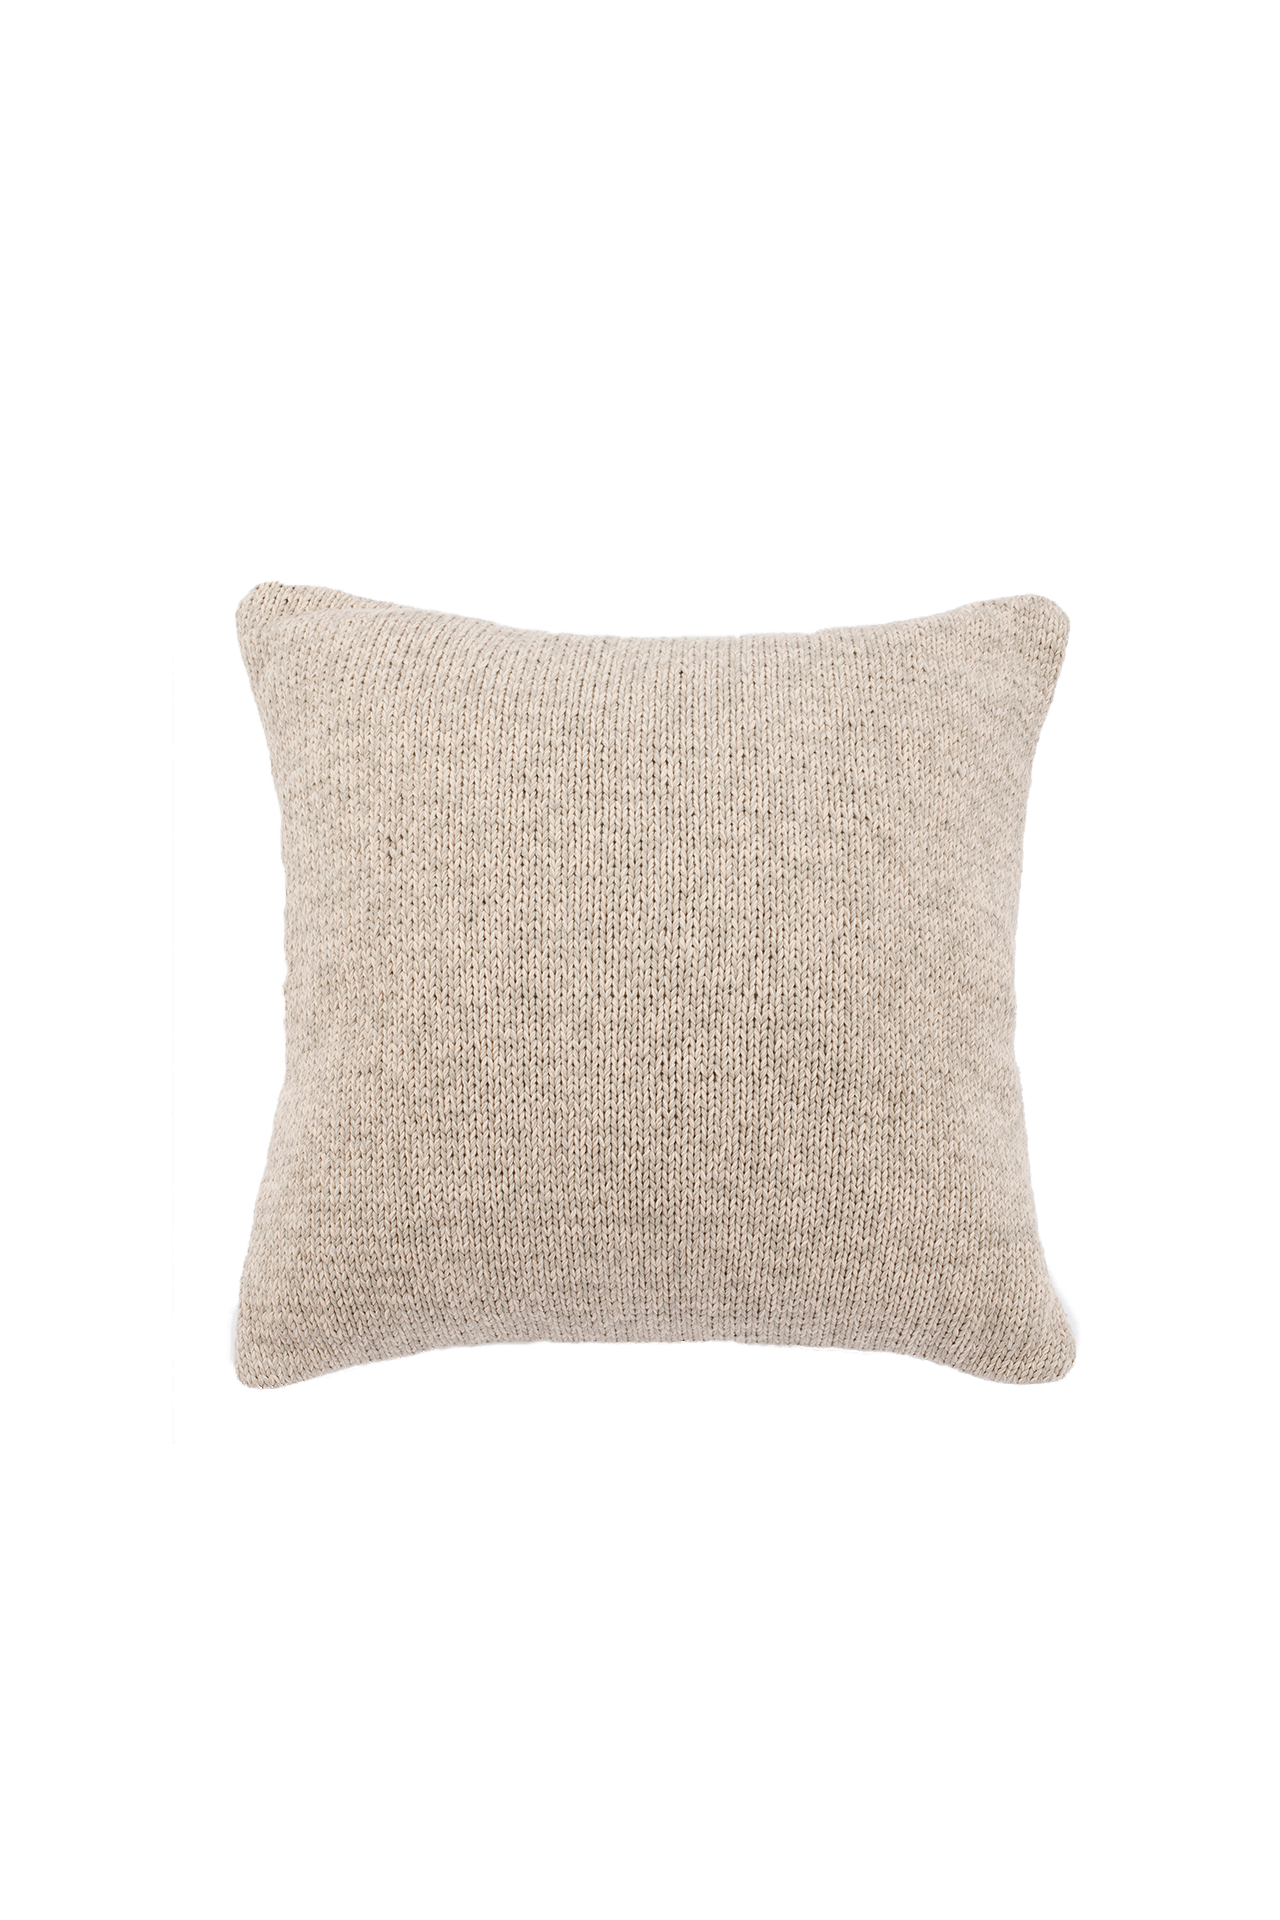 Alhambra Hand Knit Cotton Pillow